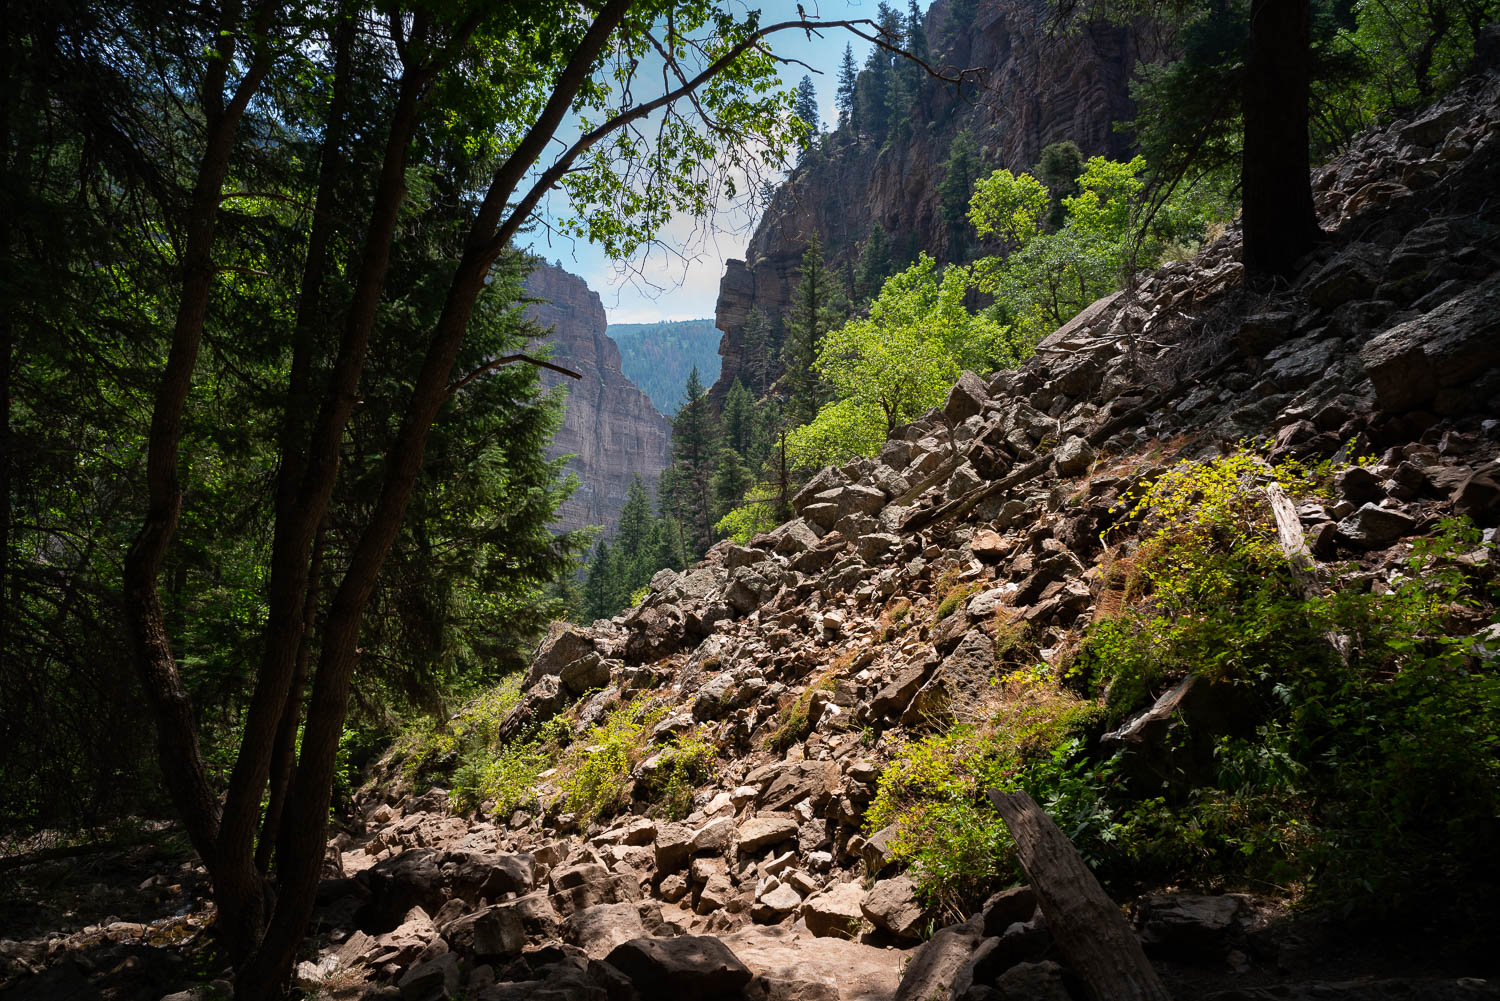 The hike up to Hanging Lake, Glenwood Canyon.